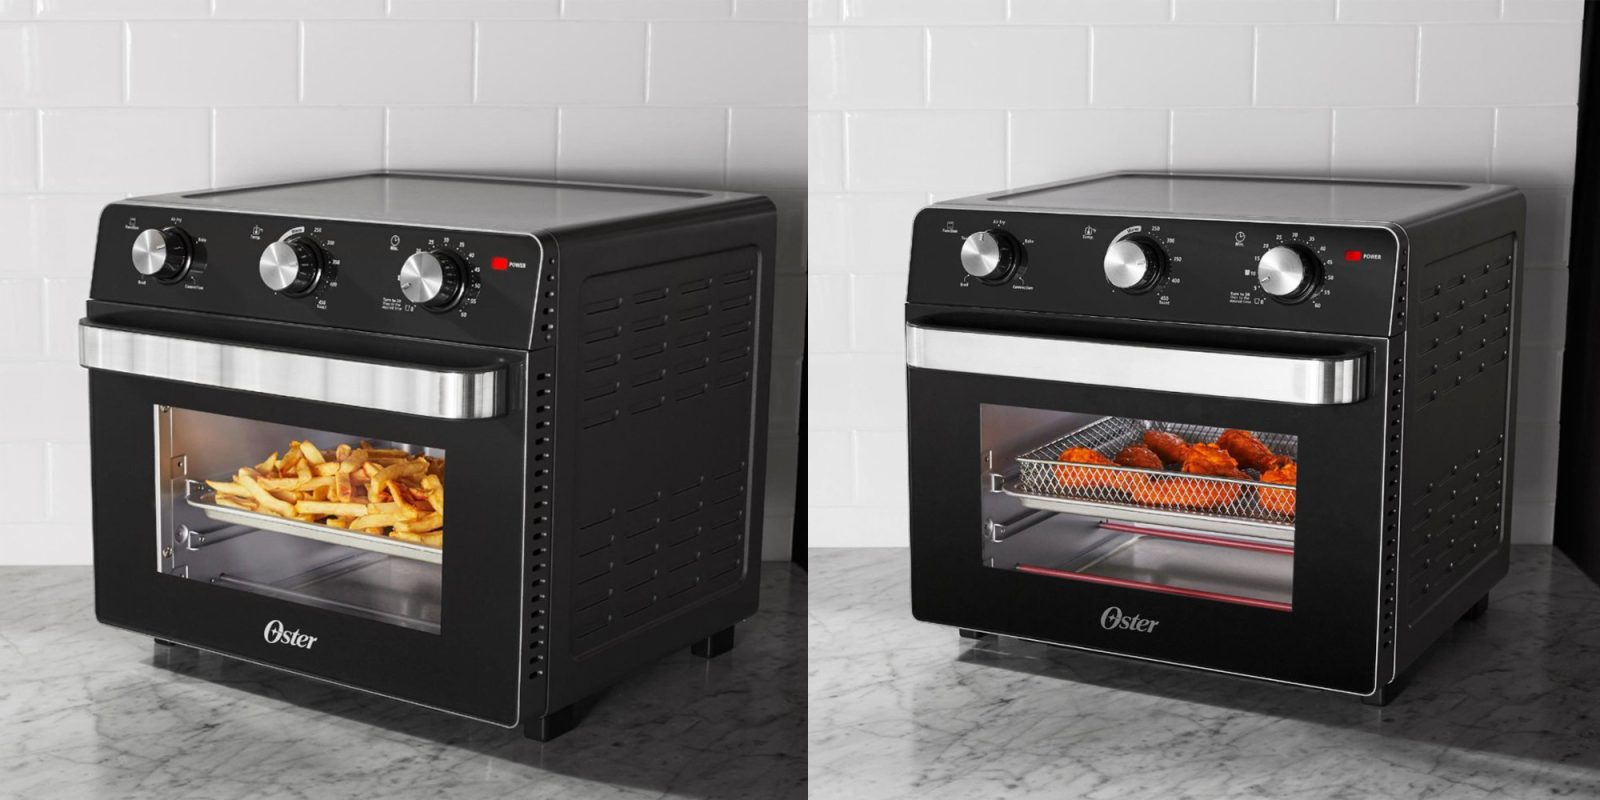 Oster's Toaster Oven is an air fryer too, now $70 (Reg. up to $170)